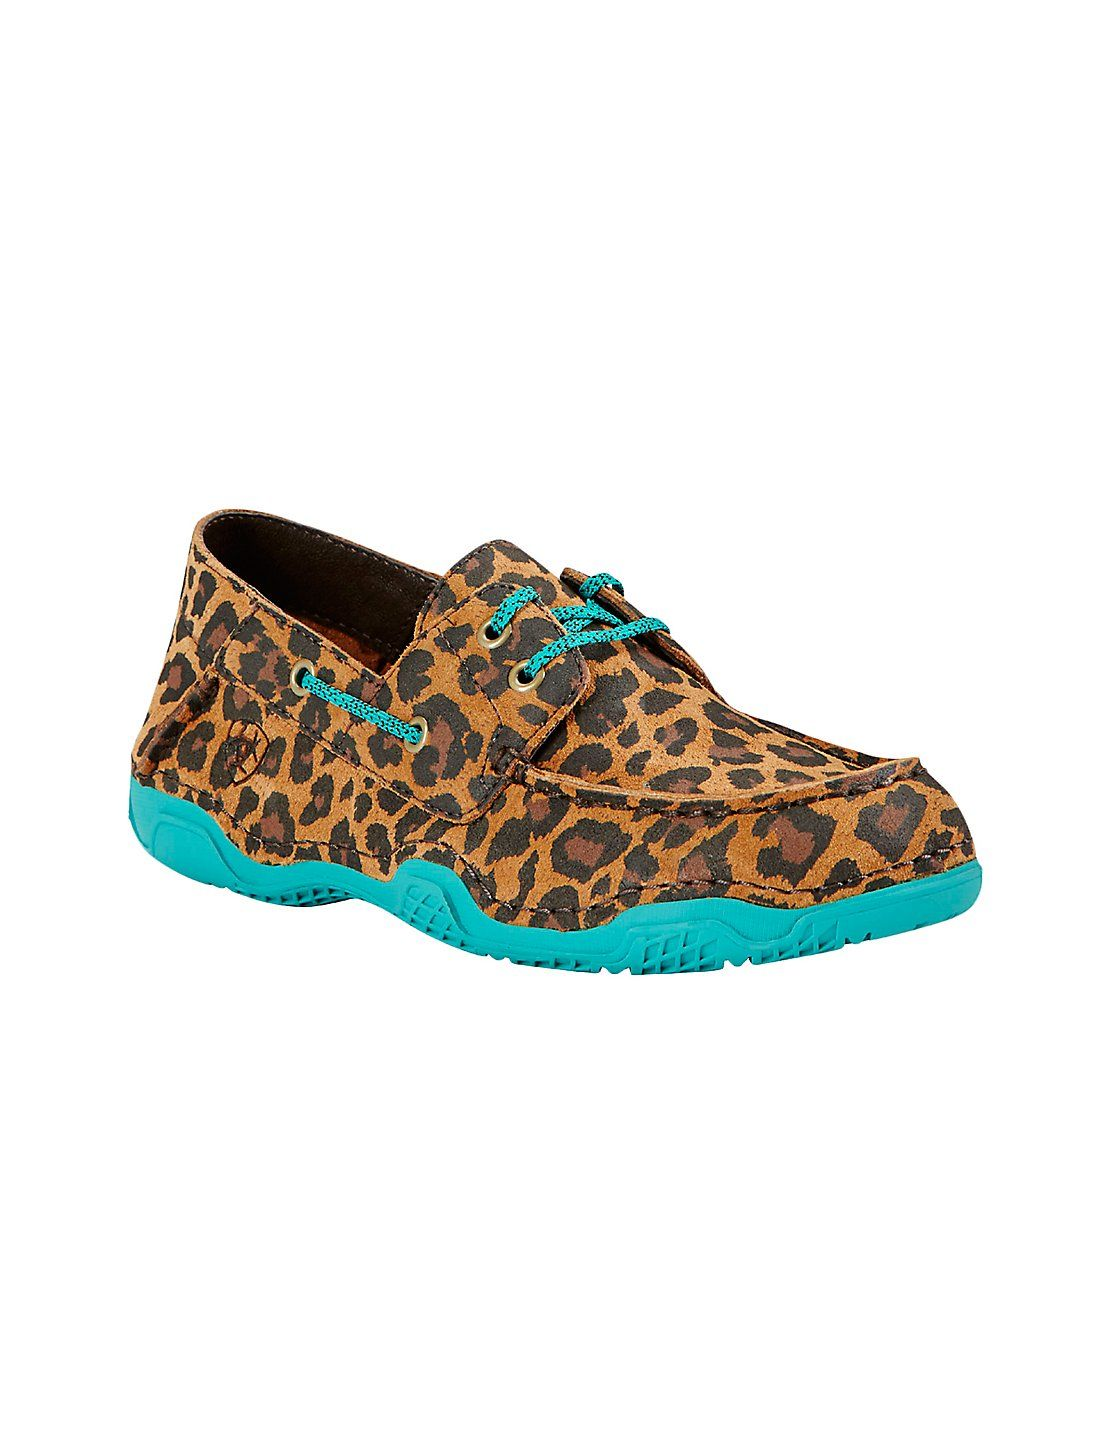 Ariat Women's Tan Leopard Print with Turquoise Trim Round Toe Shoe ...